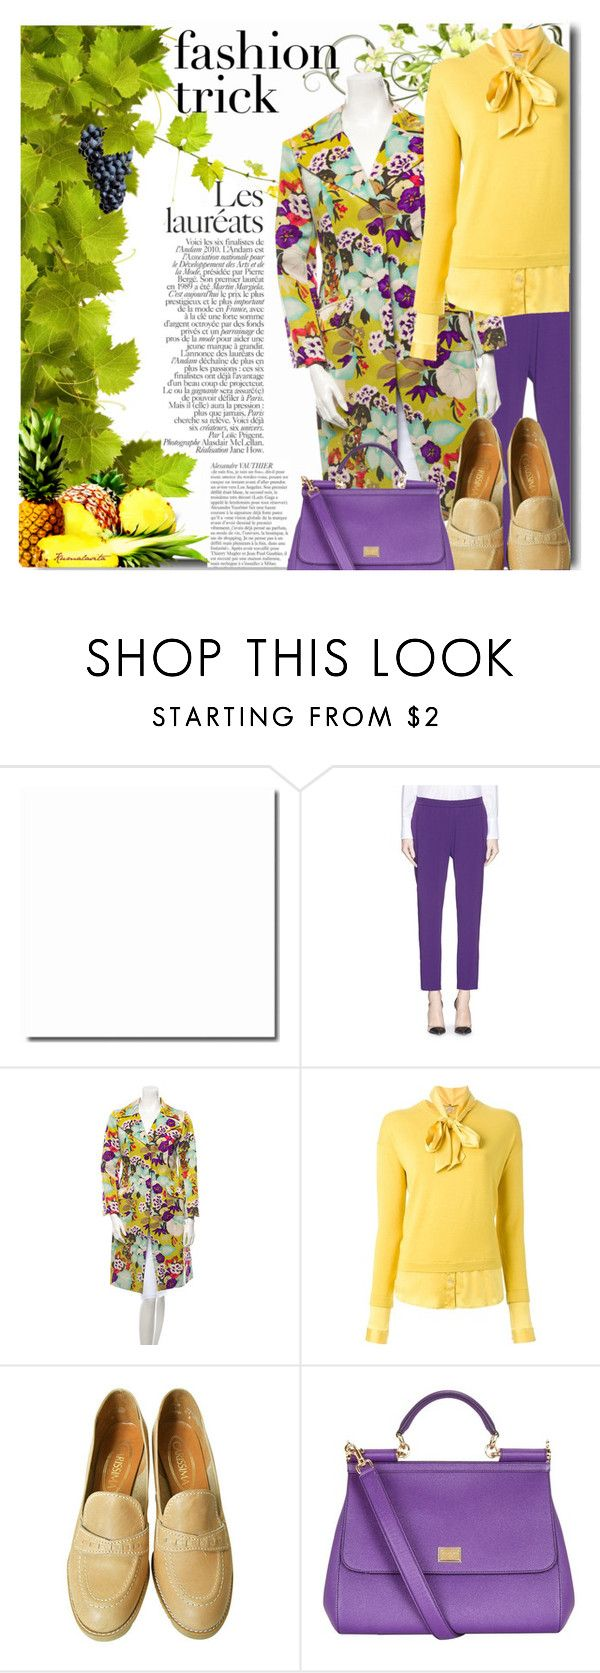 """""""Pineapple and Grapes"""" by kumalasita ❤ liked on Polyvore featuring STELLA McCARTNEY, Etro, P.A.R.O.S.H. and Dolce&Gabbana"""